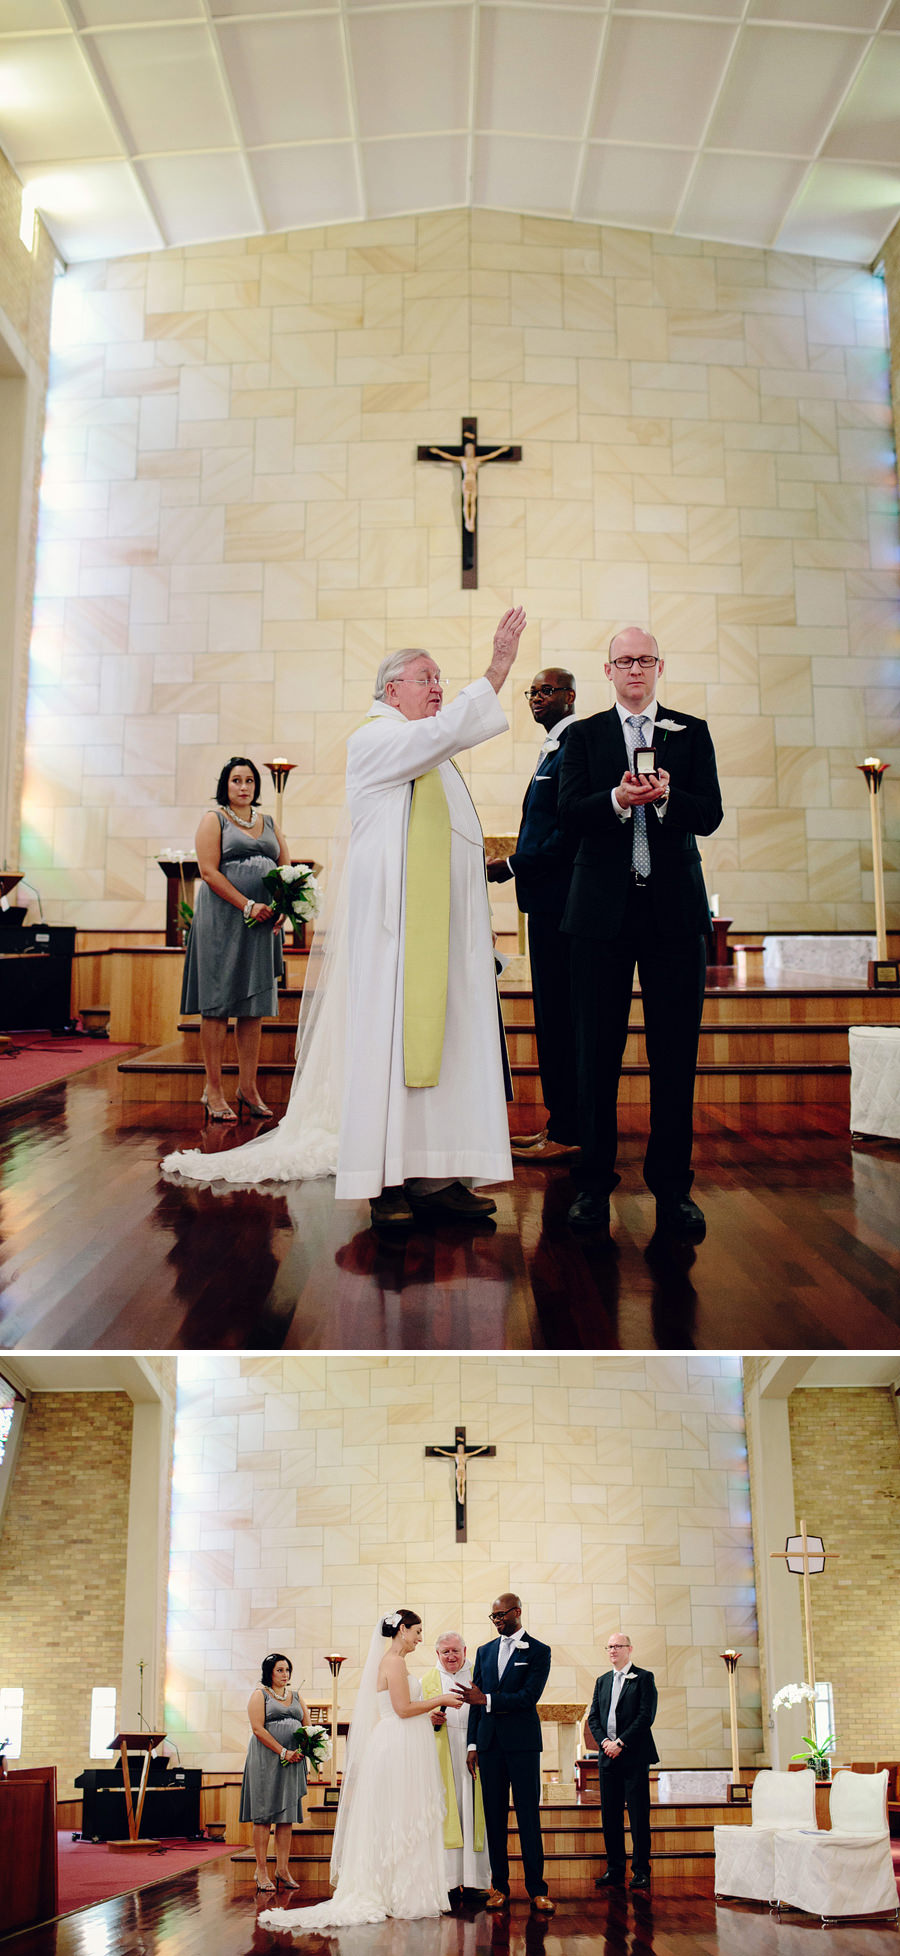 Sydney Catholic Wedding Photographer: Blessing ring